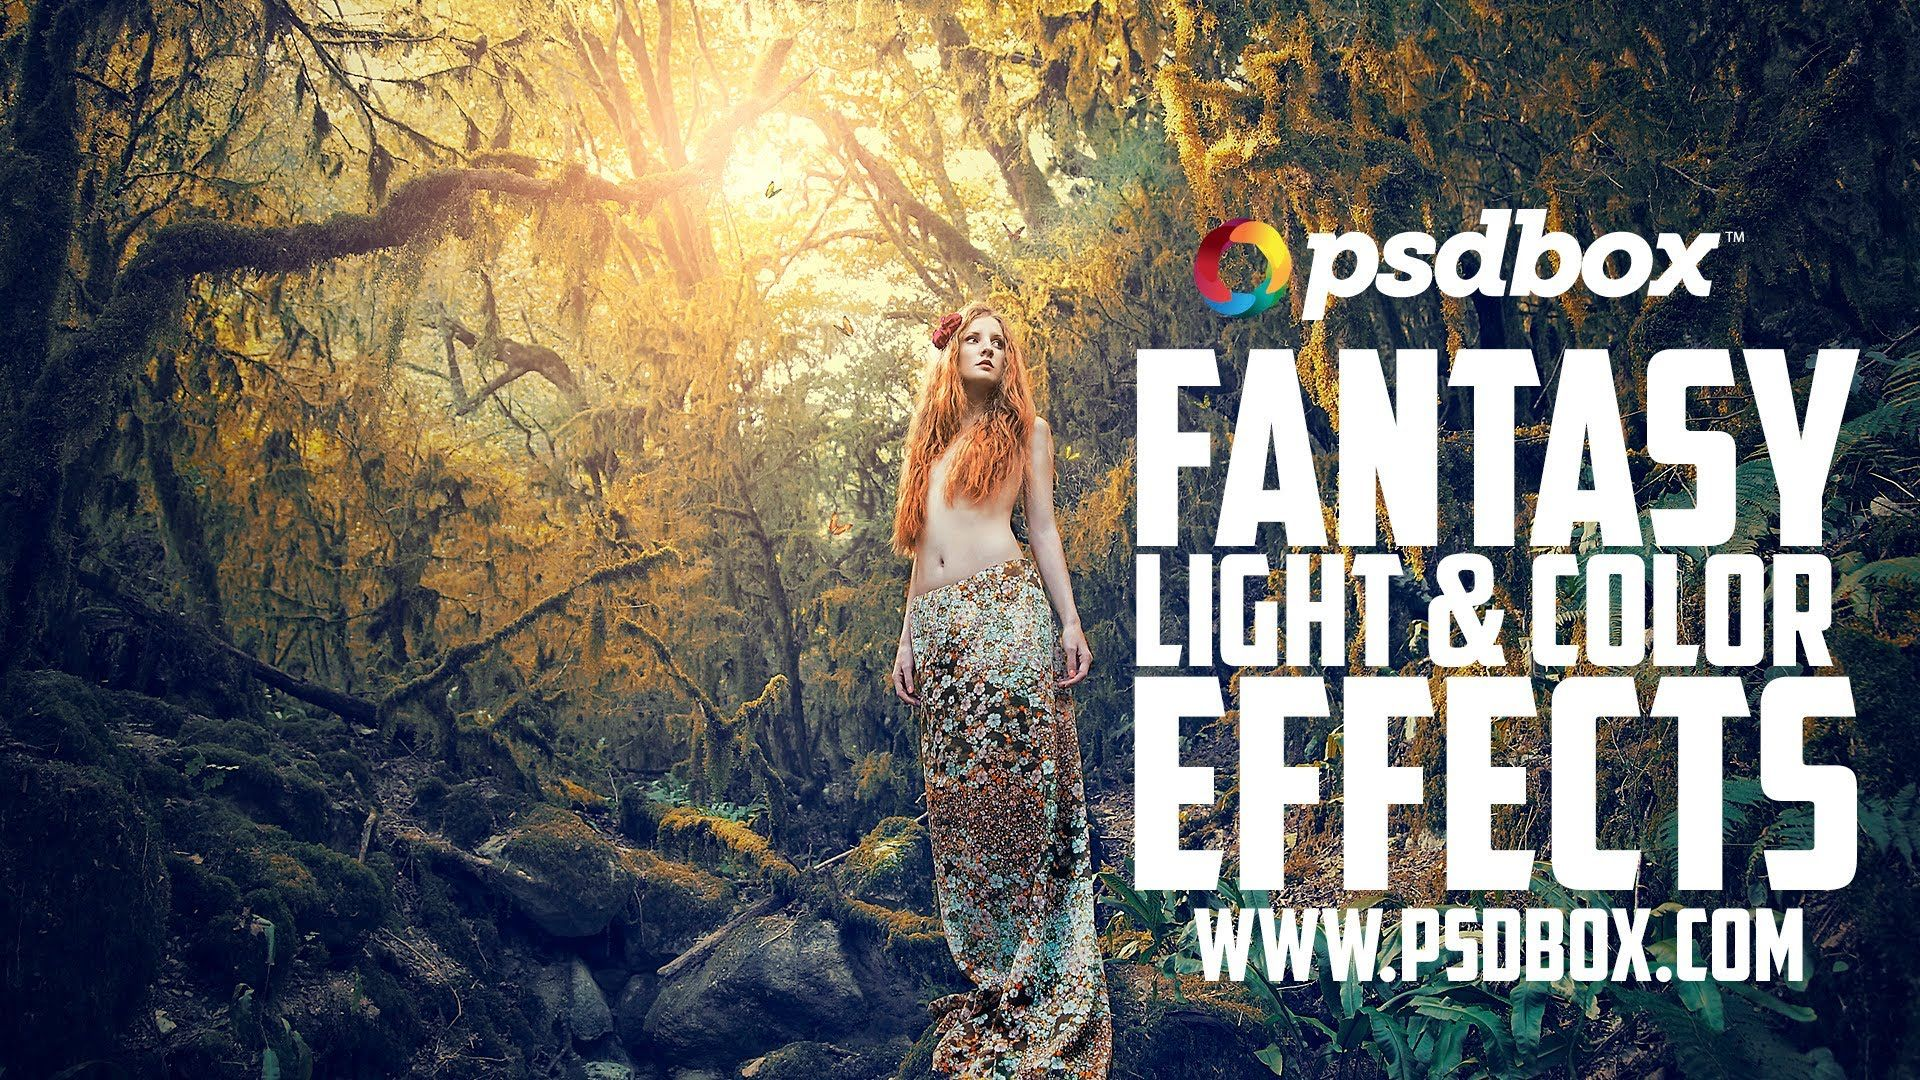 Fairytale forest color and light effects tutorial psd box fairytale forest color and light effects tutorial psd box playlist baditri Image collections